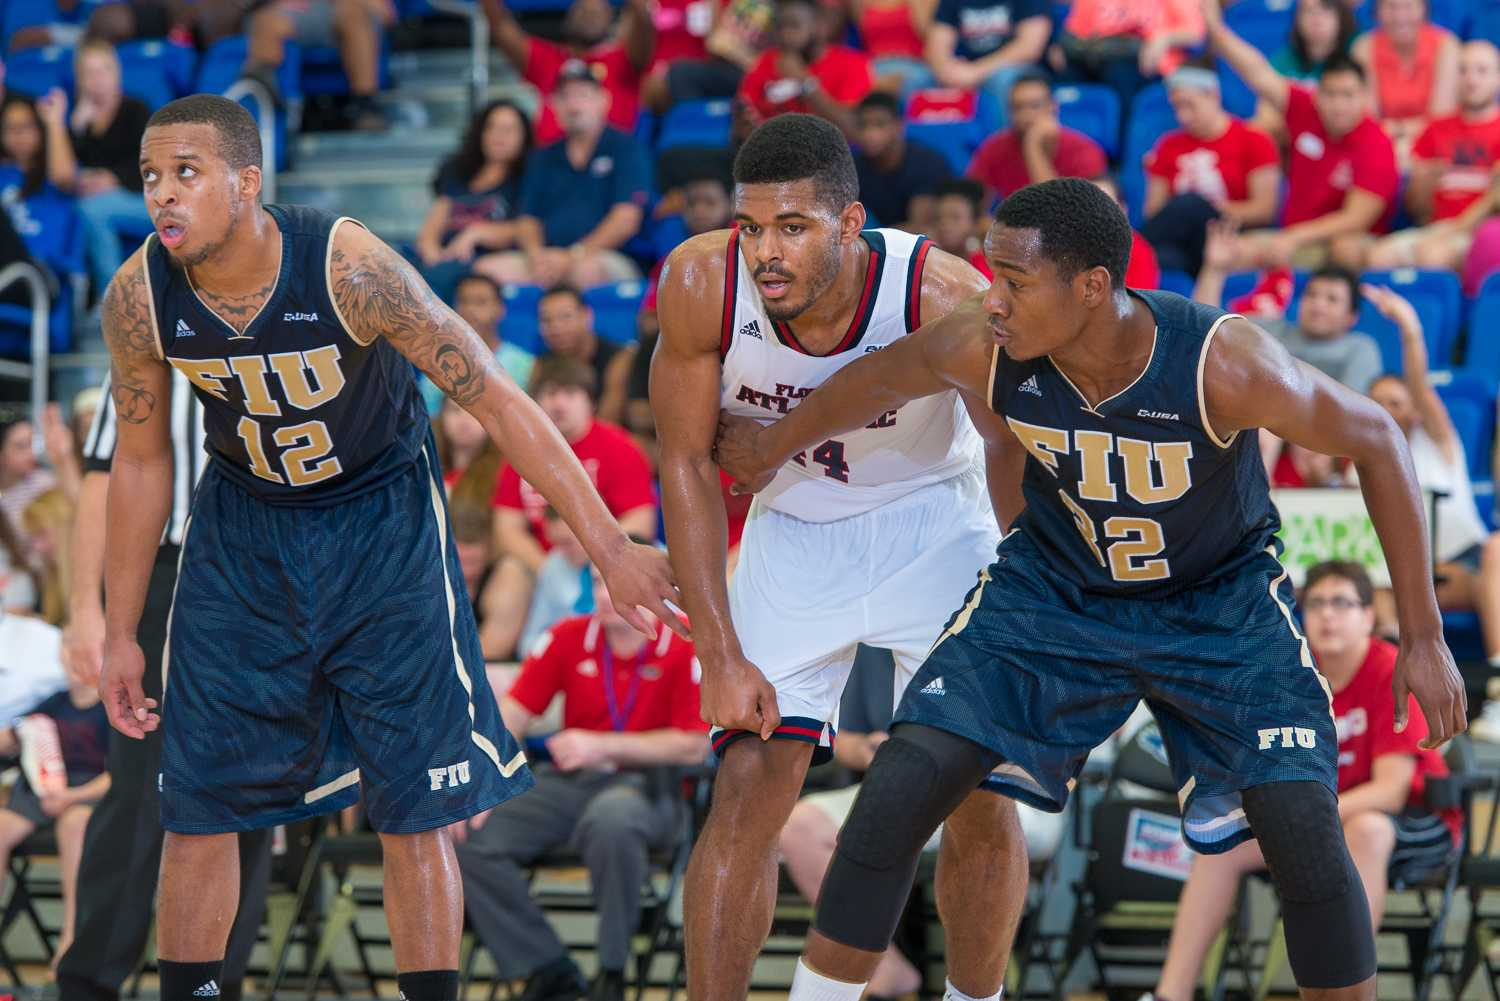 Owl's forward Kelvin Penn (44), lines up with FIU forward Daviyon Draper (32) and guard Dominique Williams (12) during an FAU free throw in the second half.